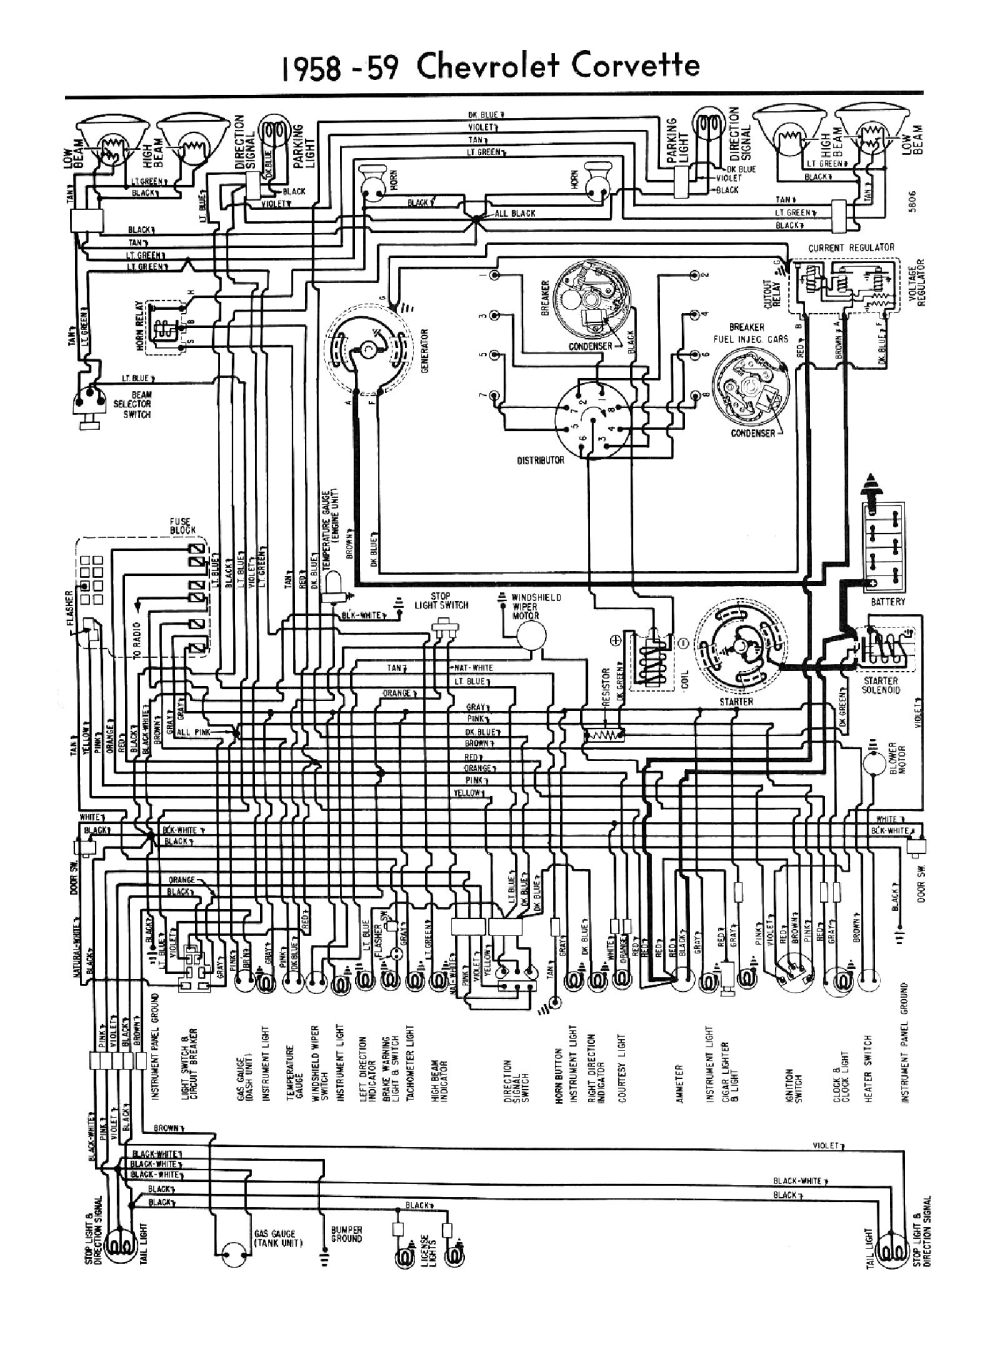 medium resolution of 76 corvette wiring diagram wiring diagrams 1981 corvette wiring diagram 1979 chevy corvette wiring schematic free download